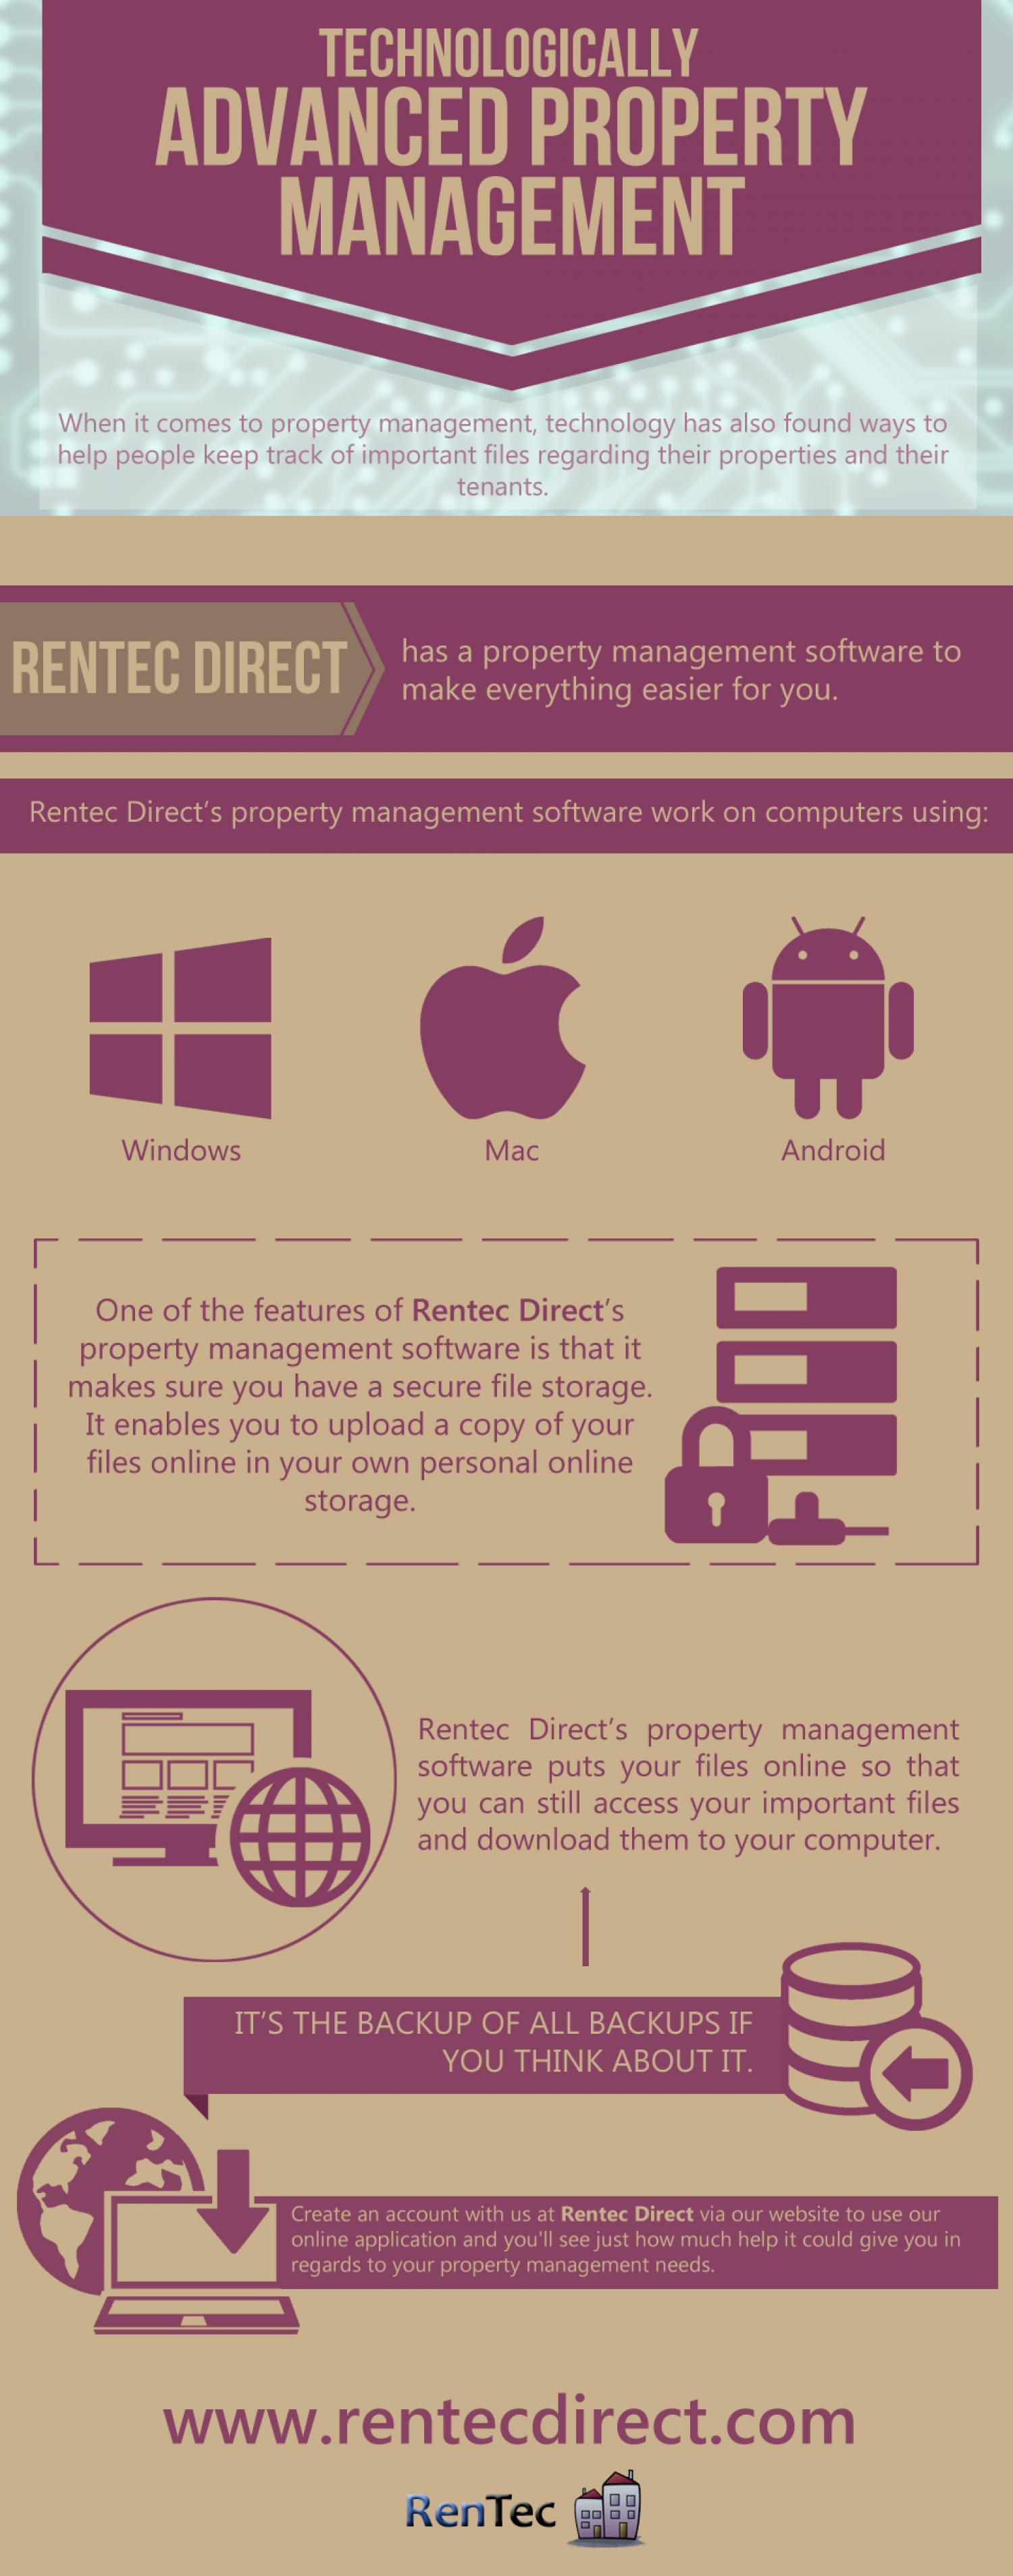 Technologically Advanced Property Management Infographic